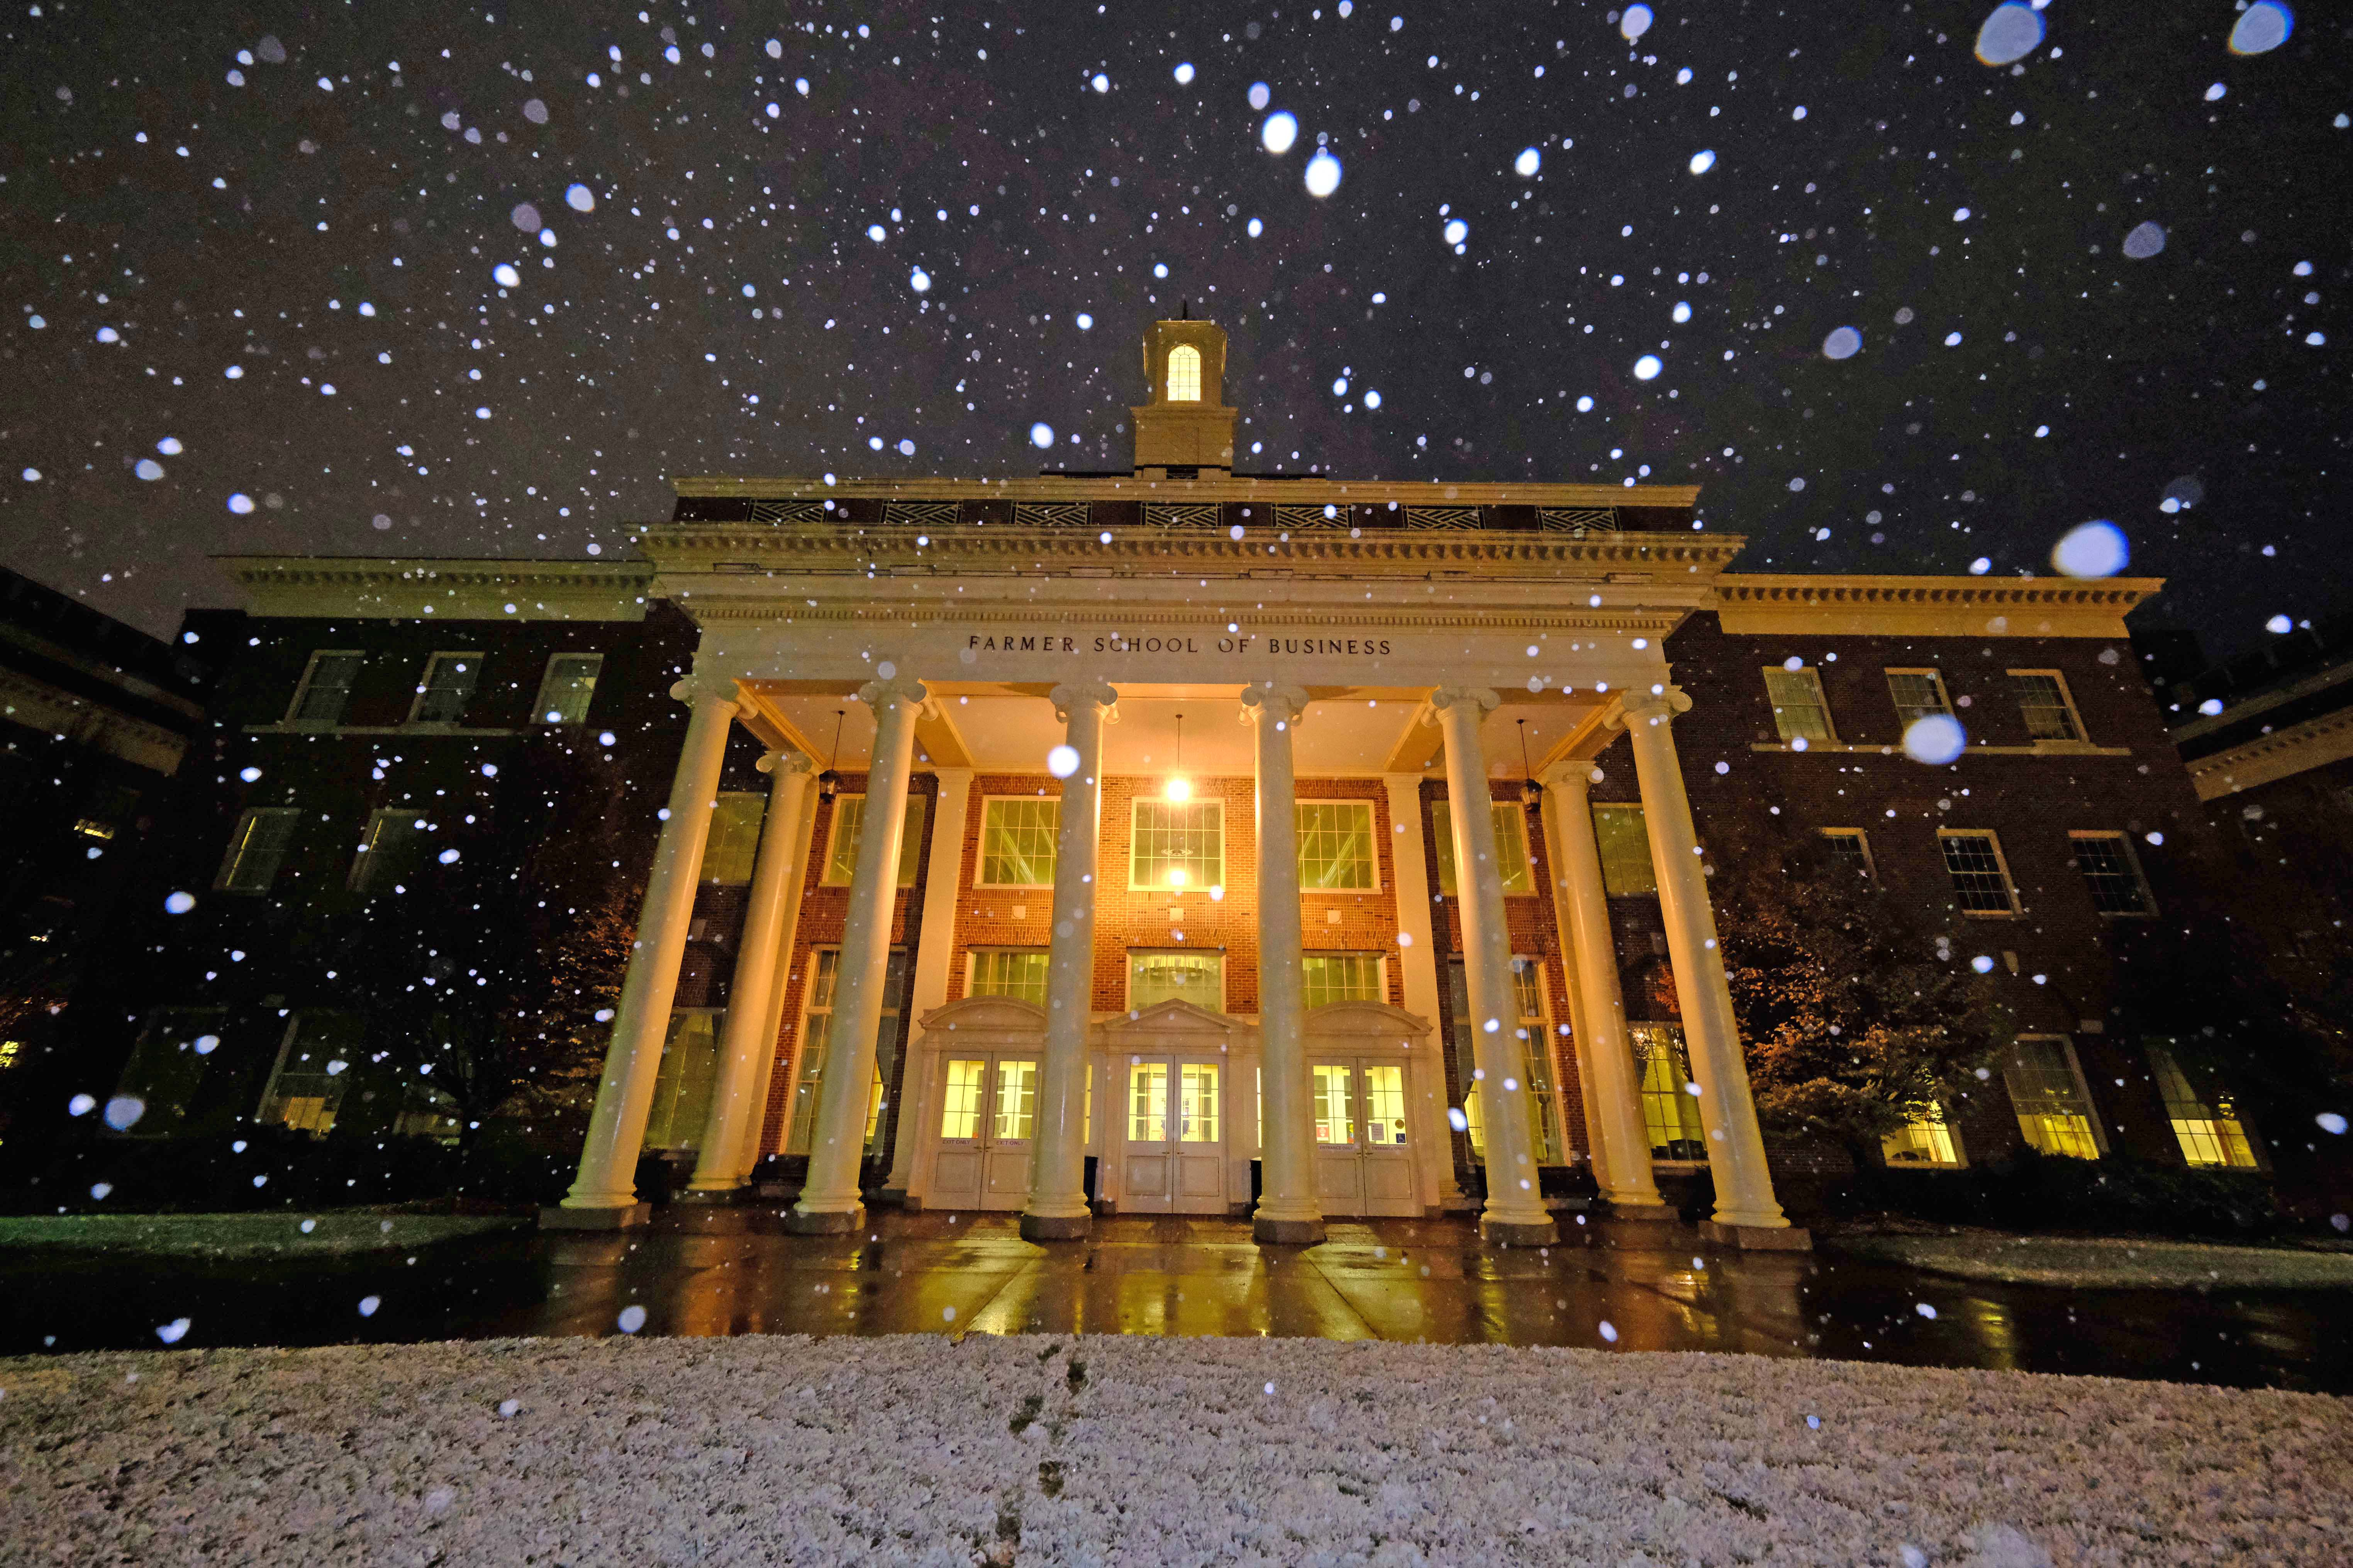 Miami's campuses - Farmer building in a snow shower